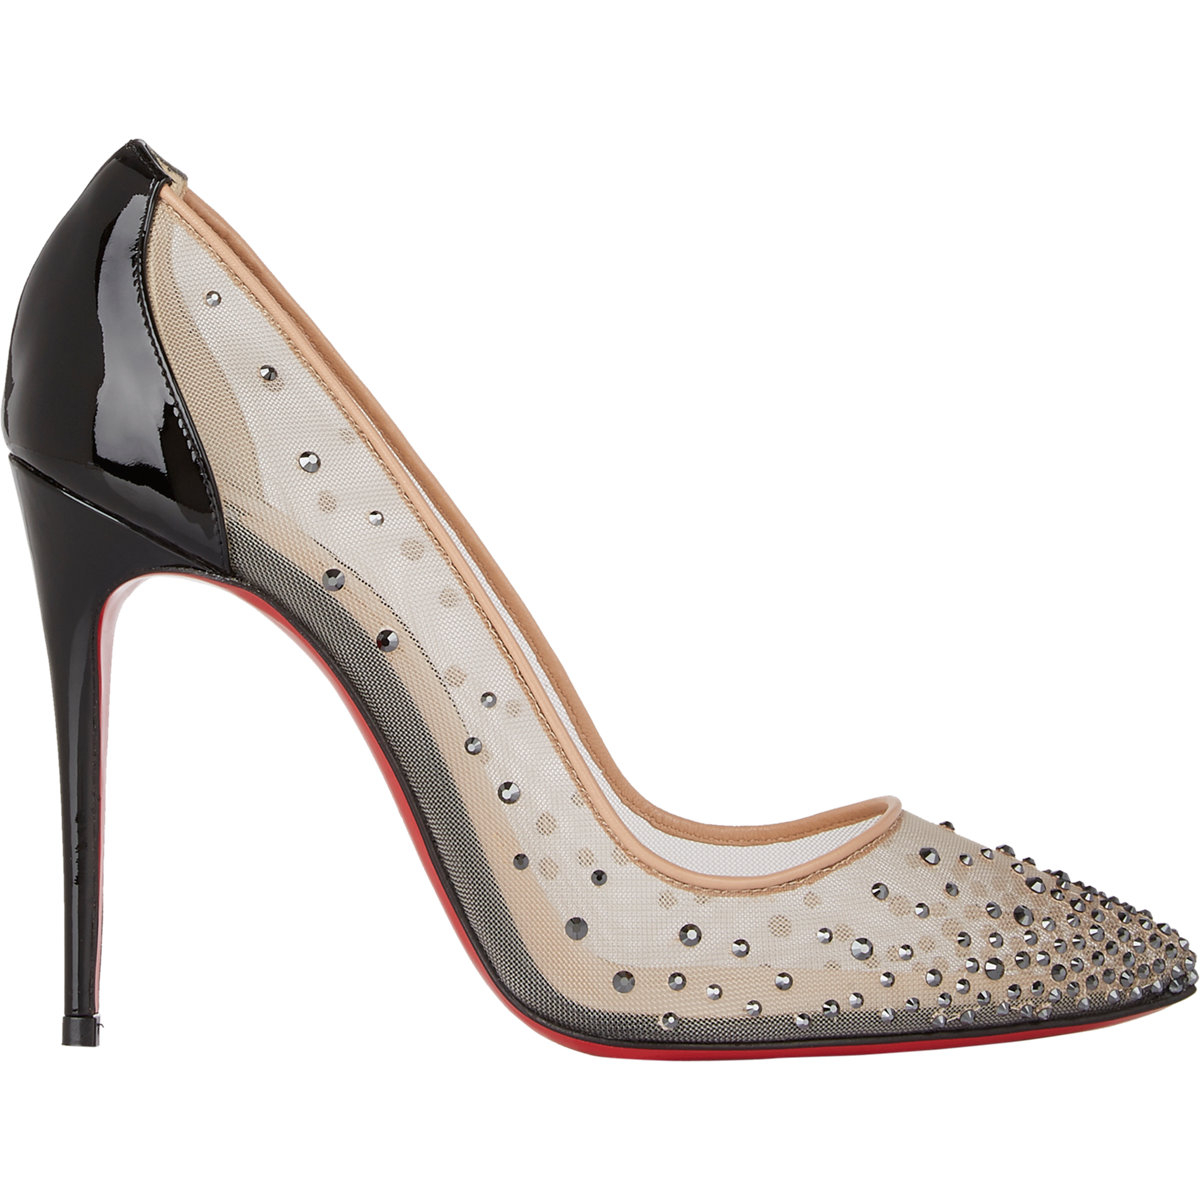 Christian Louboutin Strass Leather Pumps largest supplier cheap price outlet get authentic best store to get online N0u1H